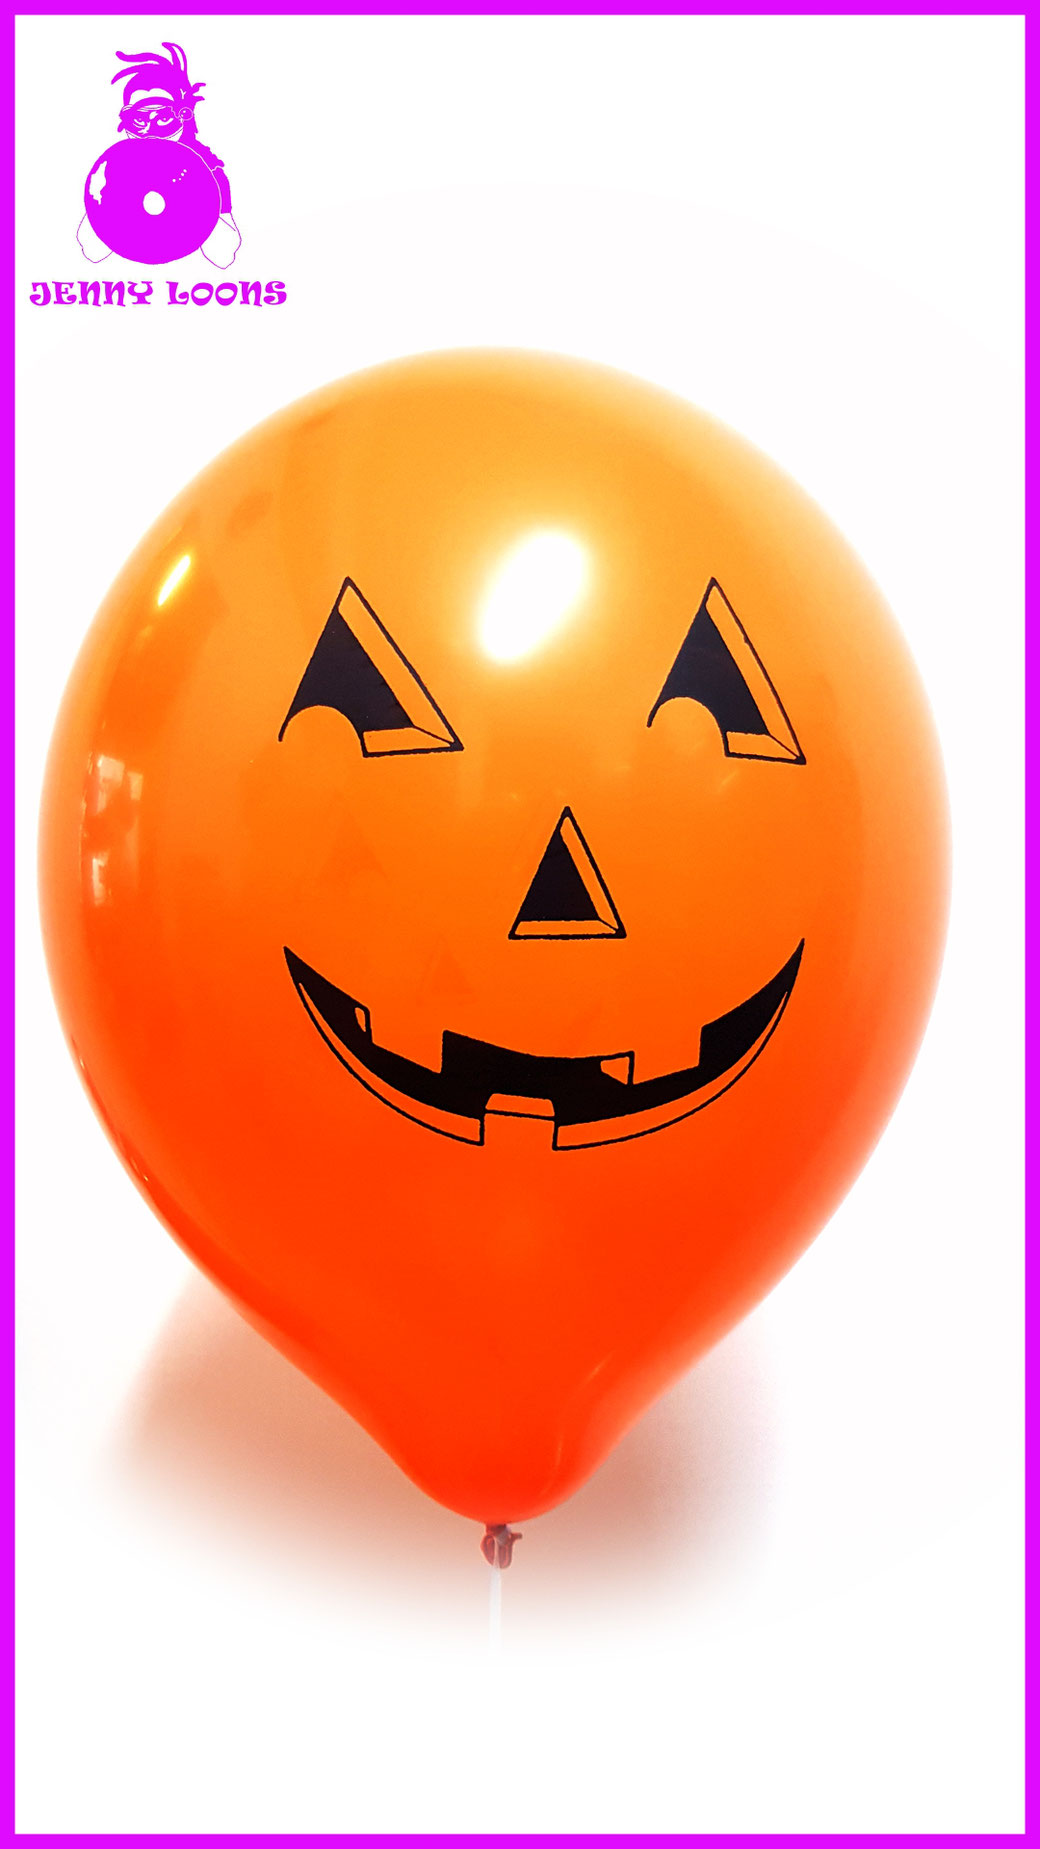 "TUFTEX 17"" PUMPKIN FACE KÜRBIS GESICHT ORANGE HALLOWEEN LUFTBALLON BALLOON"